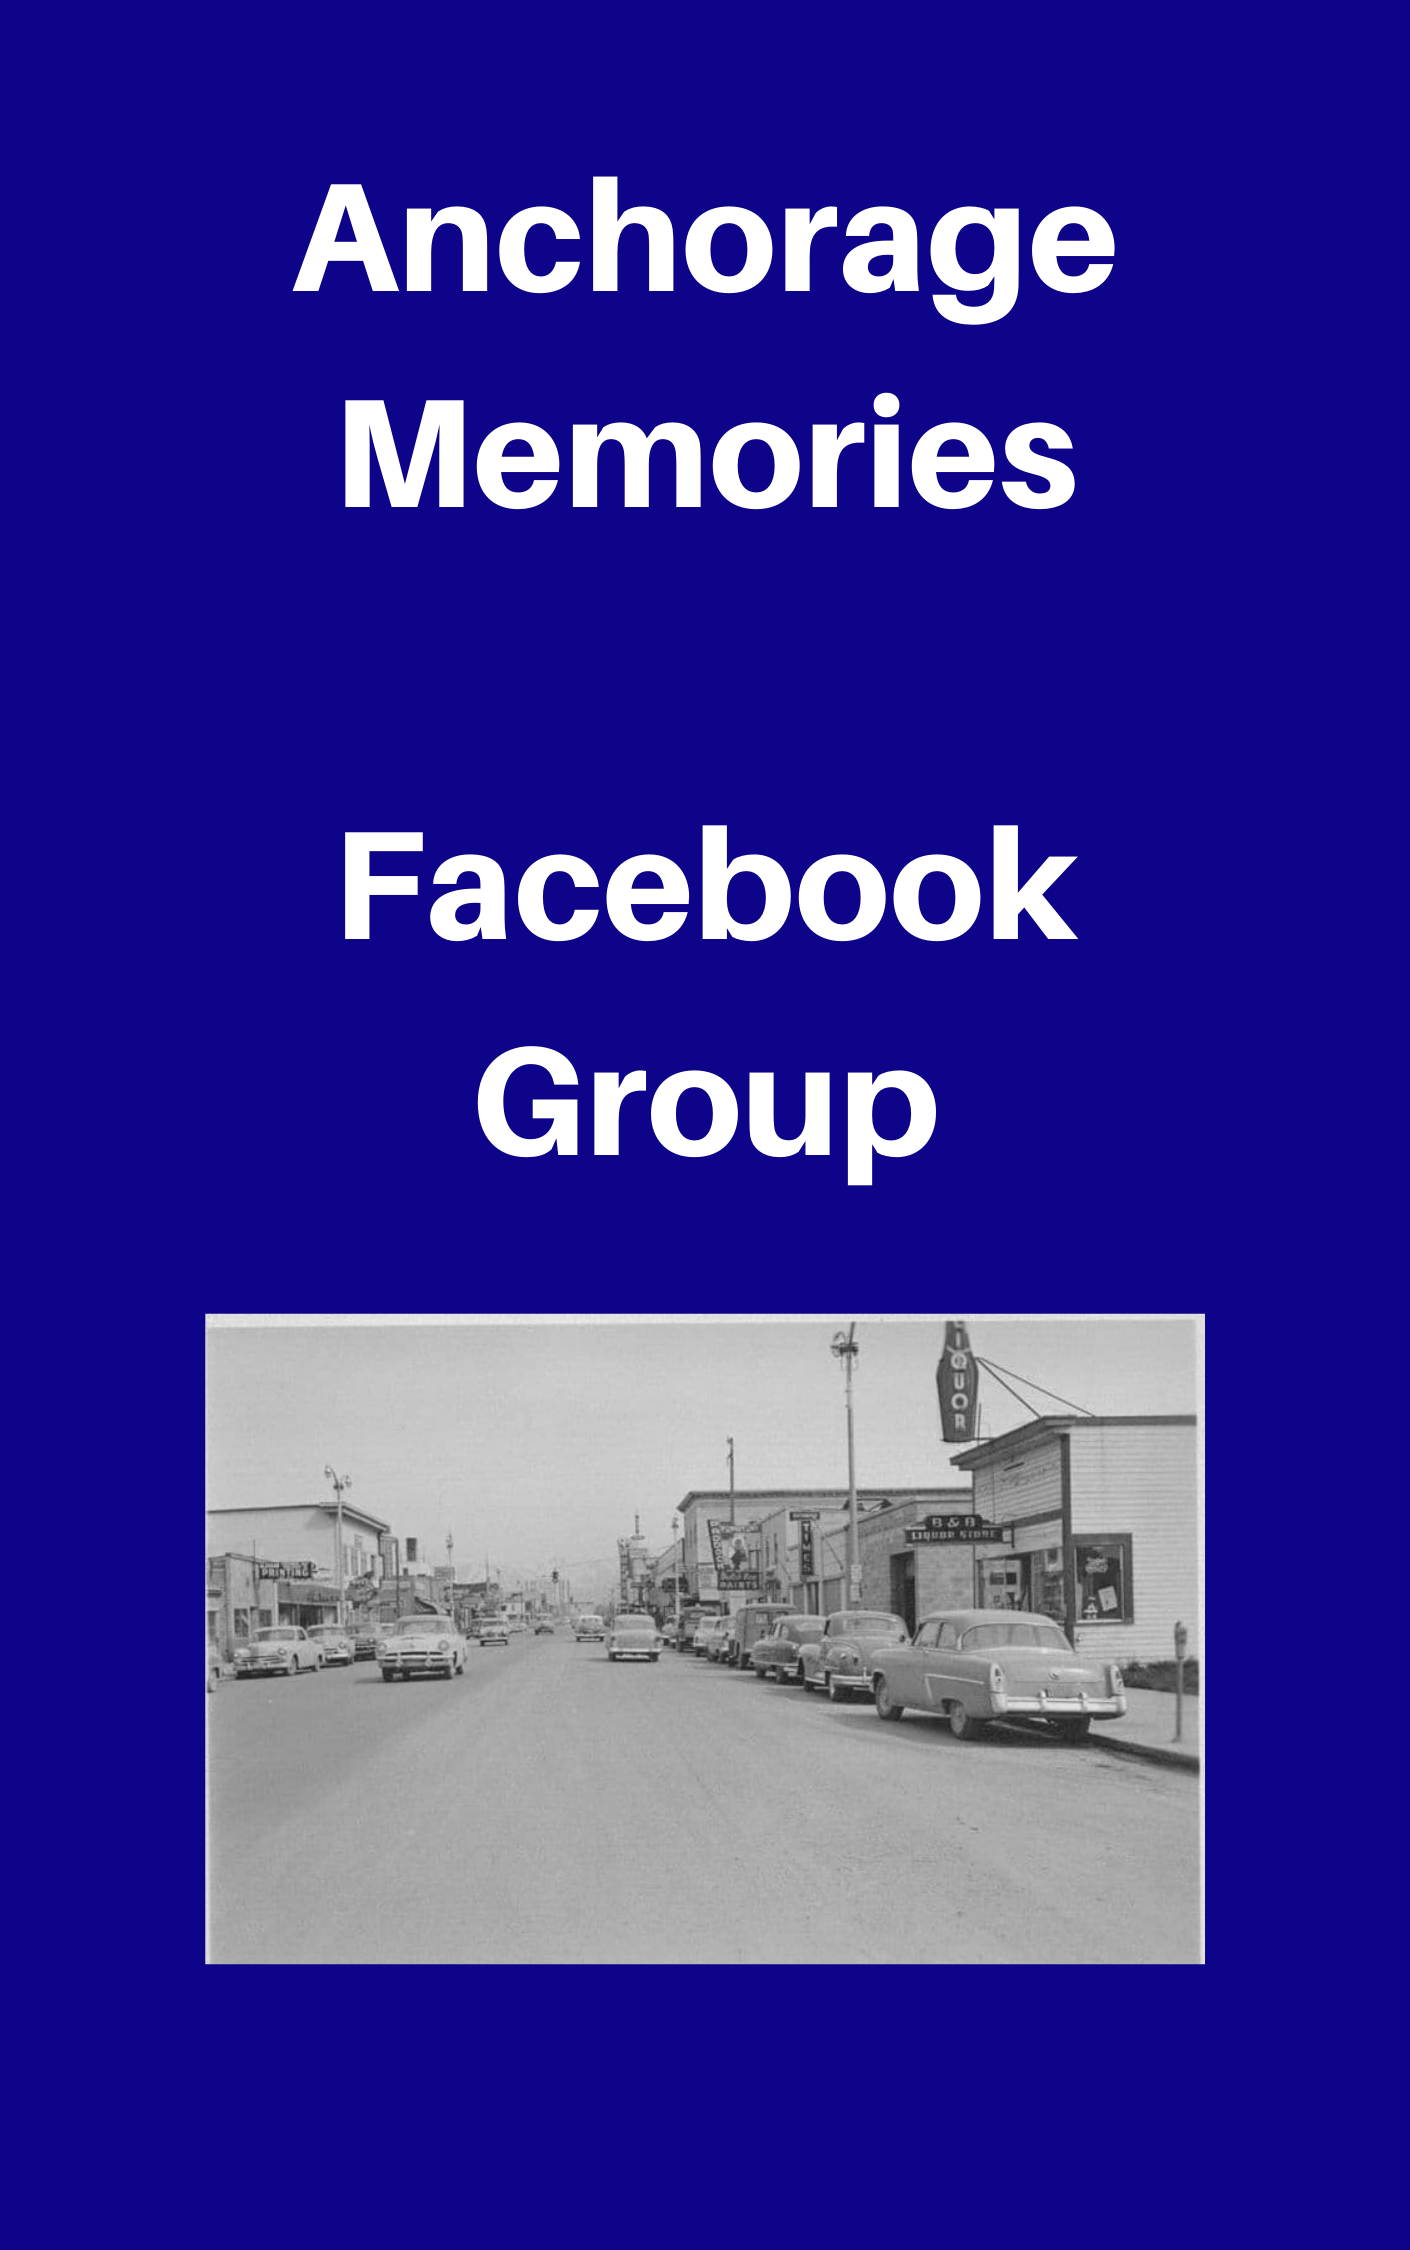 Anchorage Memories Private Facebook Group